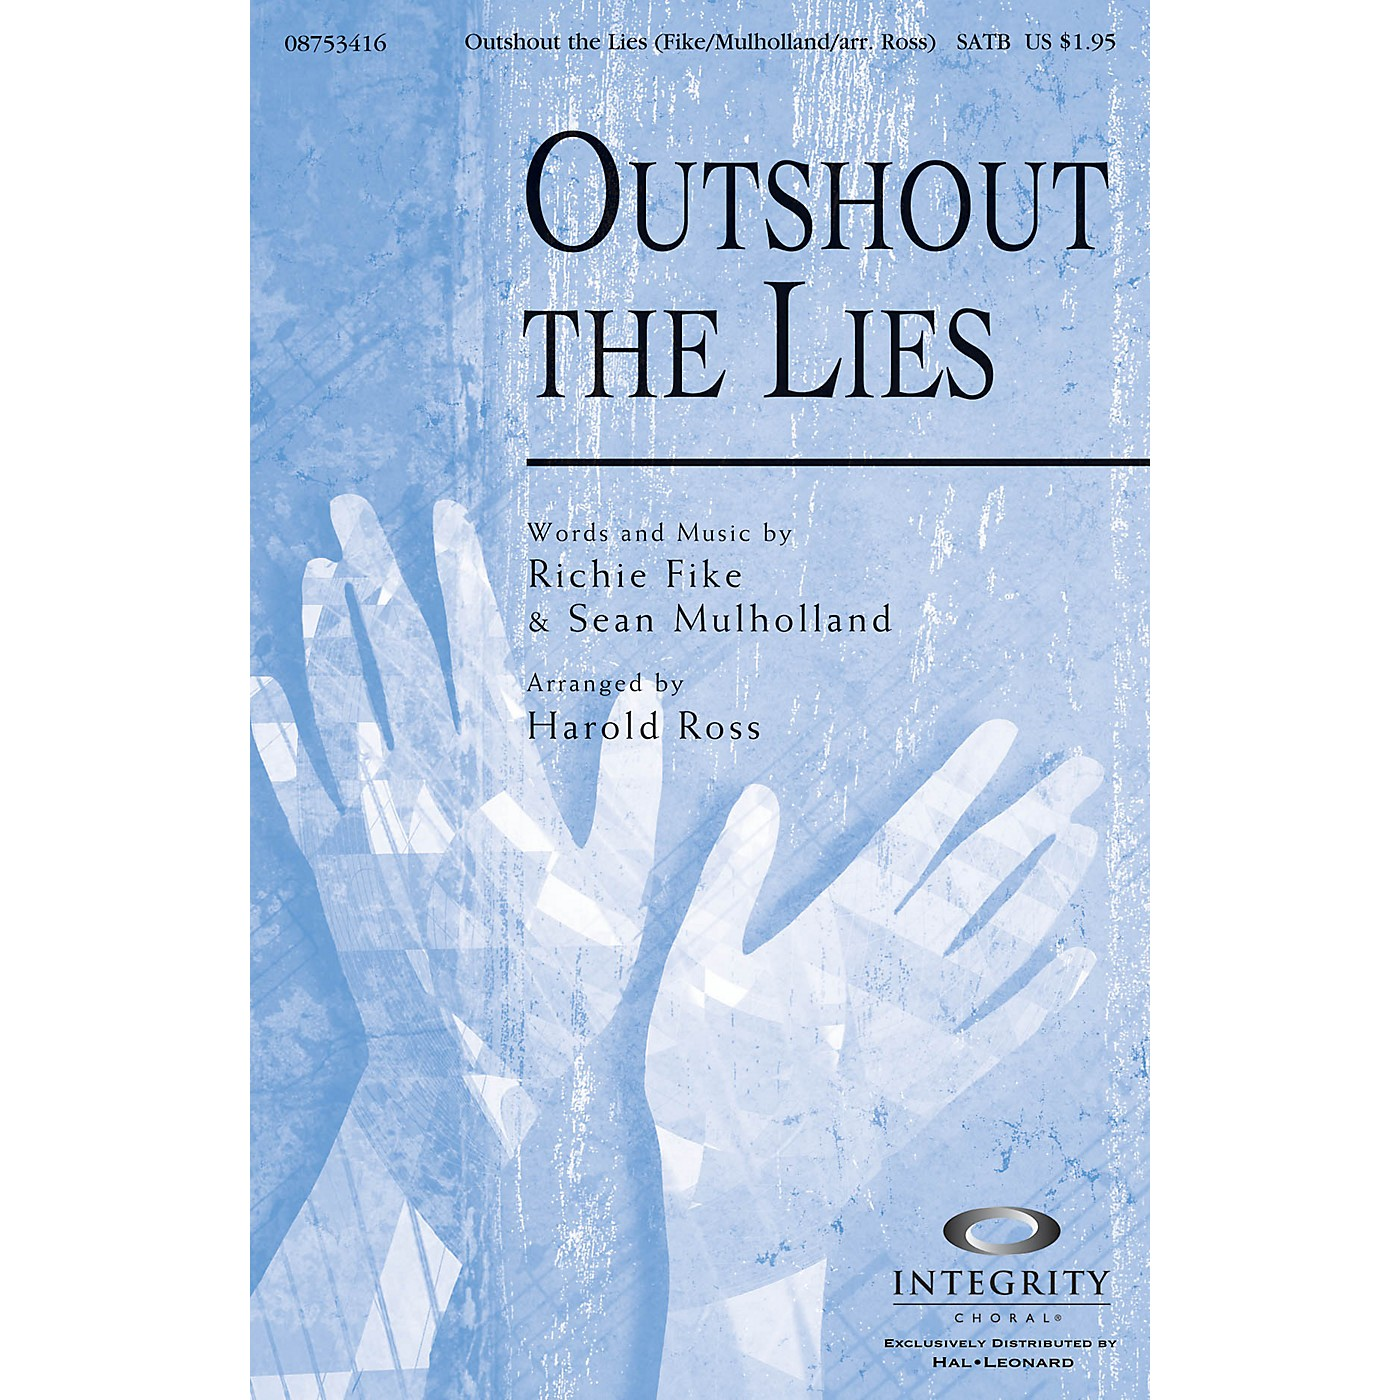 Integrity Choral Outshout the Lies ORCHESTRA ACCOMPANIMENT Arranged by Harold Ross thumbnail